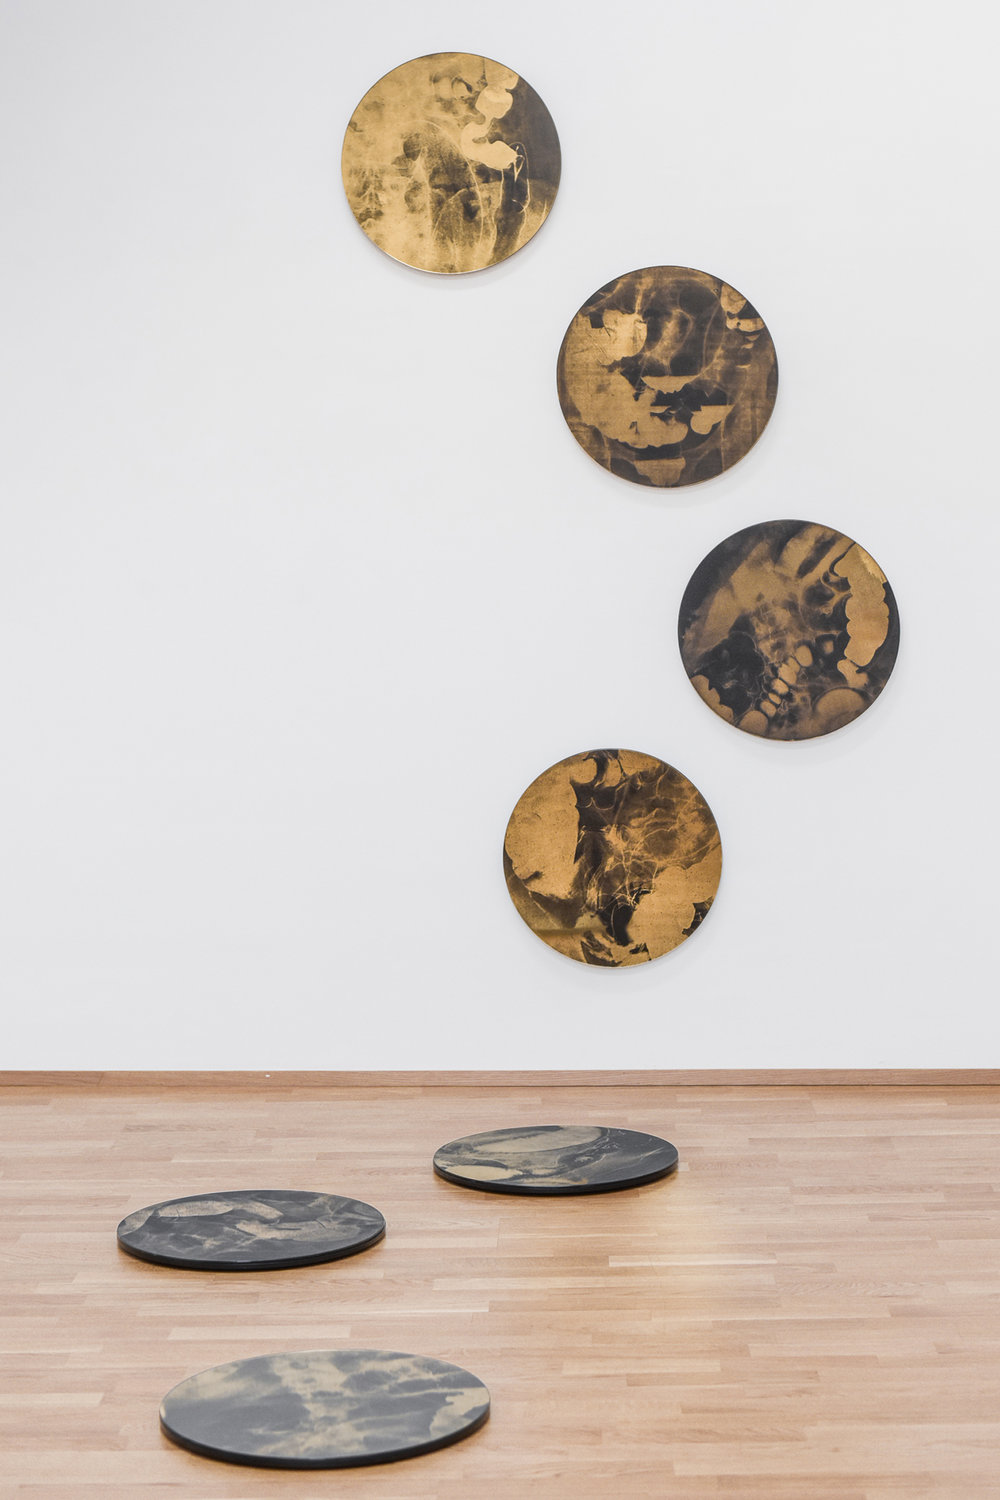 INSTALLATION VIEW of the seven golden pieces, GALLERY ARCC.ART, spring 2018